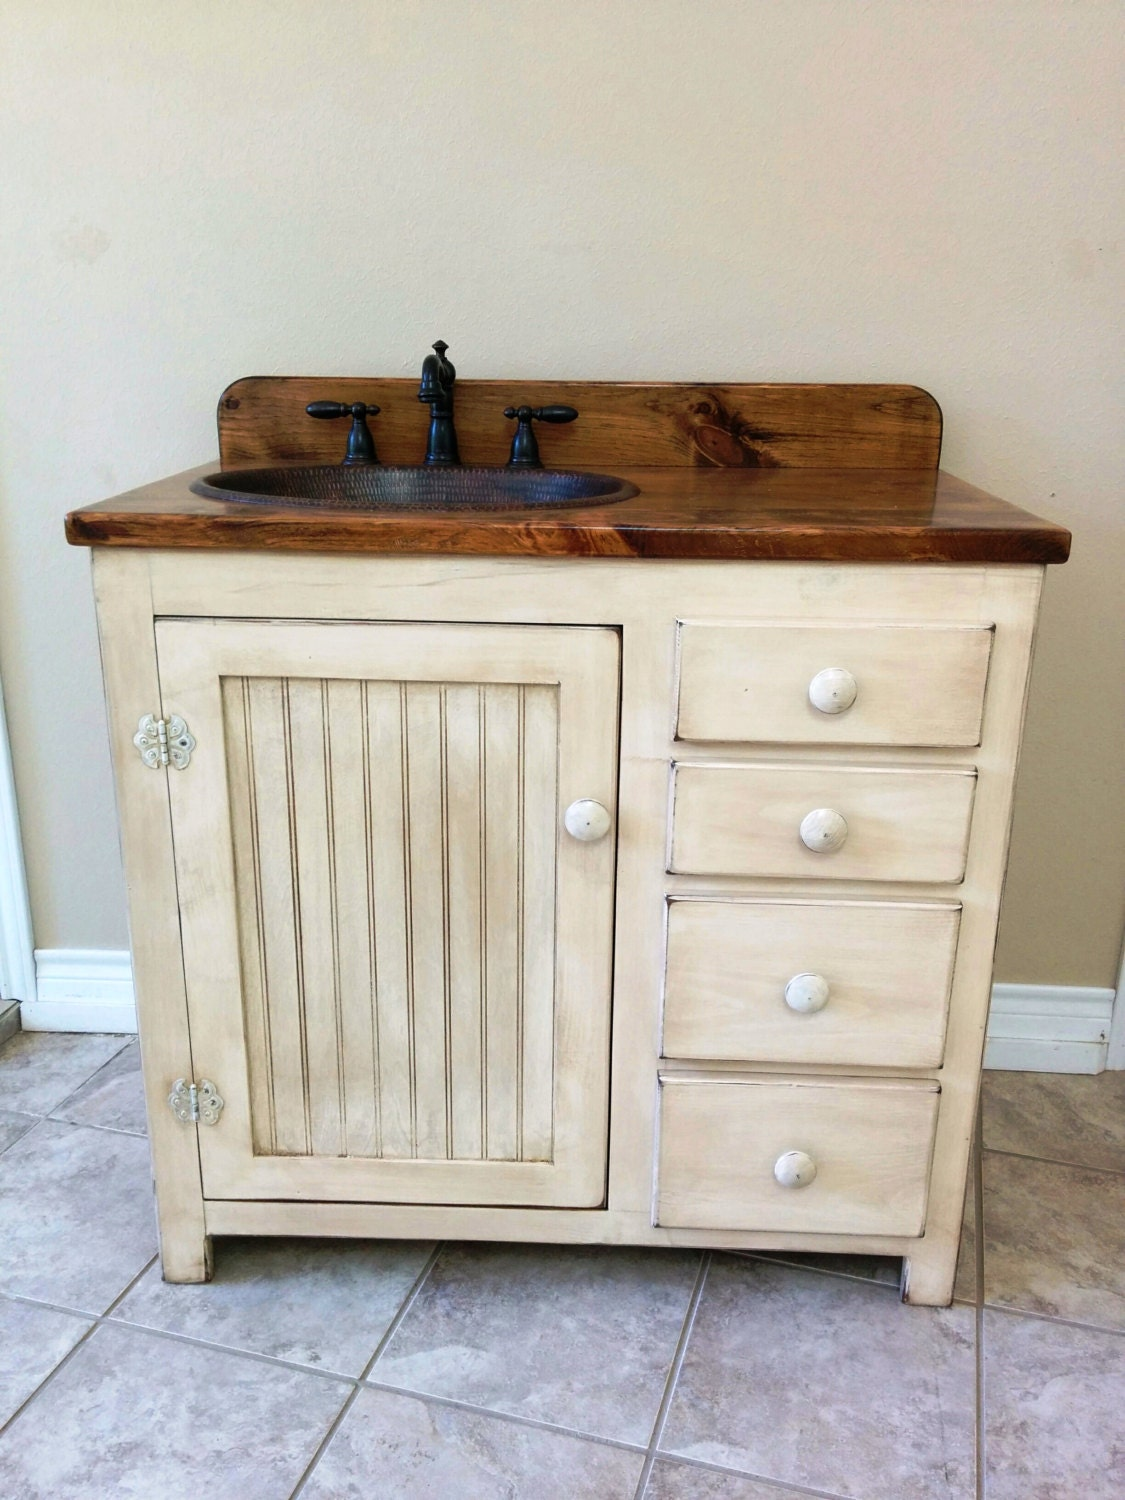 Bathroom vanity 36 rustic farmhouse bathroom vanity fh1297 36l bathroom vanity w drawers rustic bathroom vanity copper sink